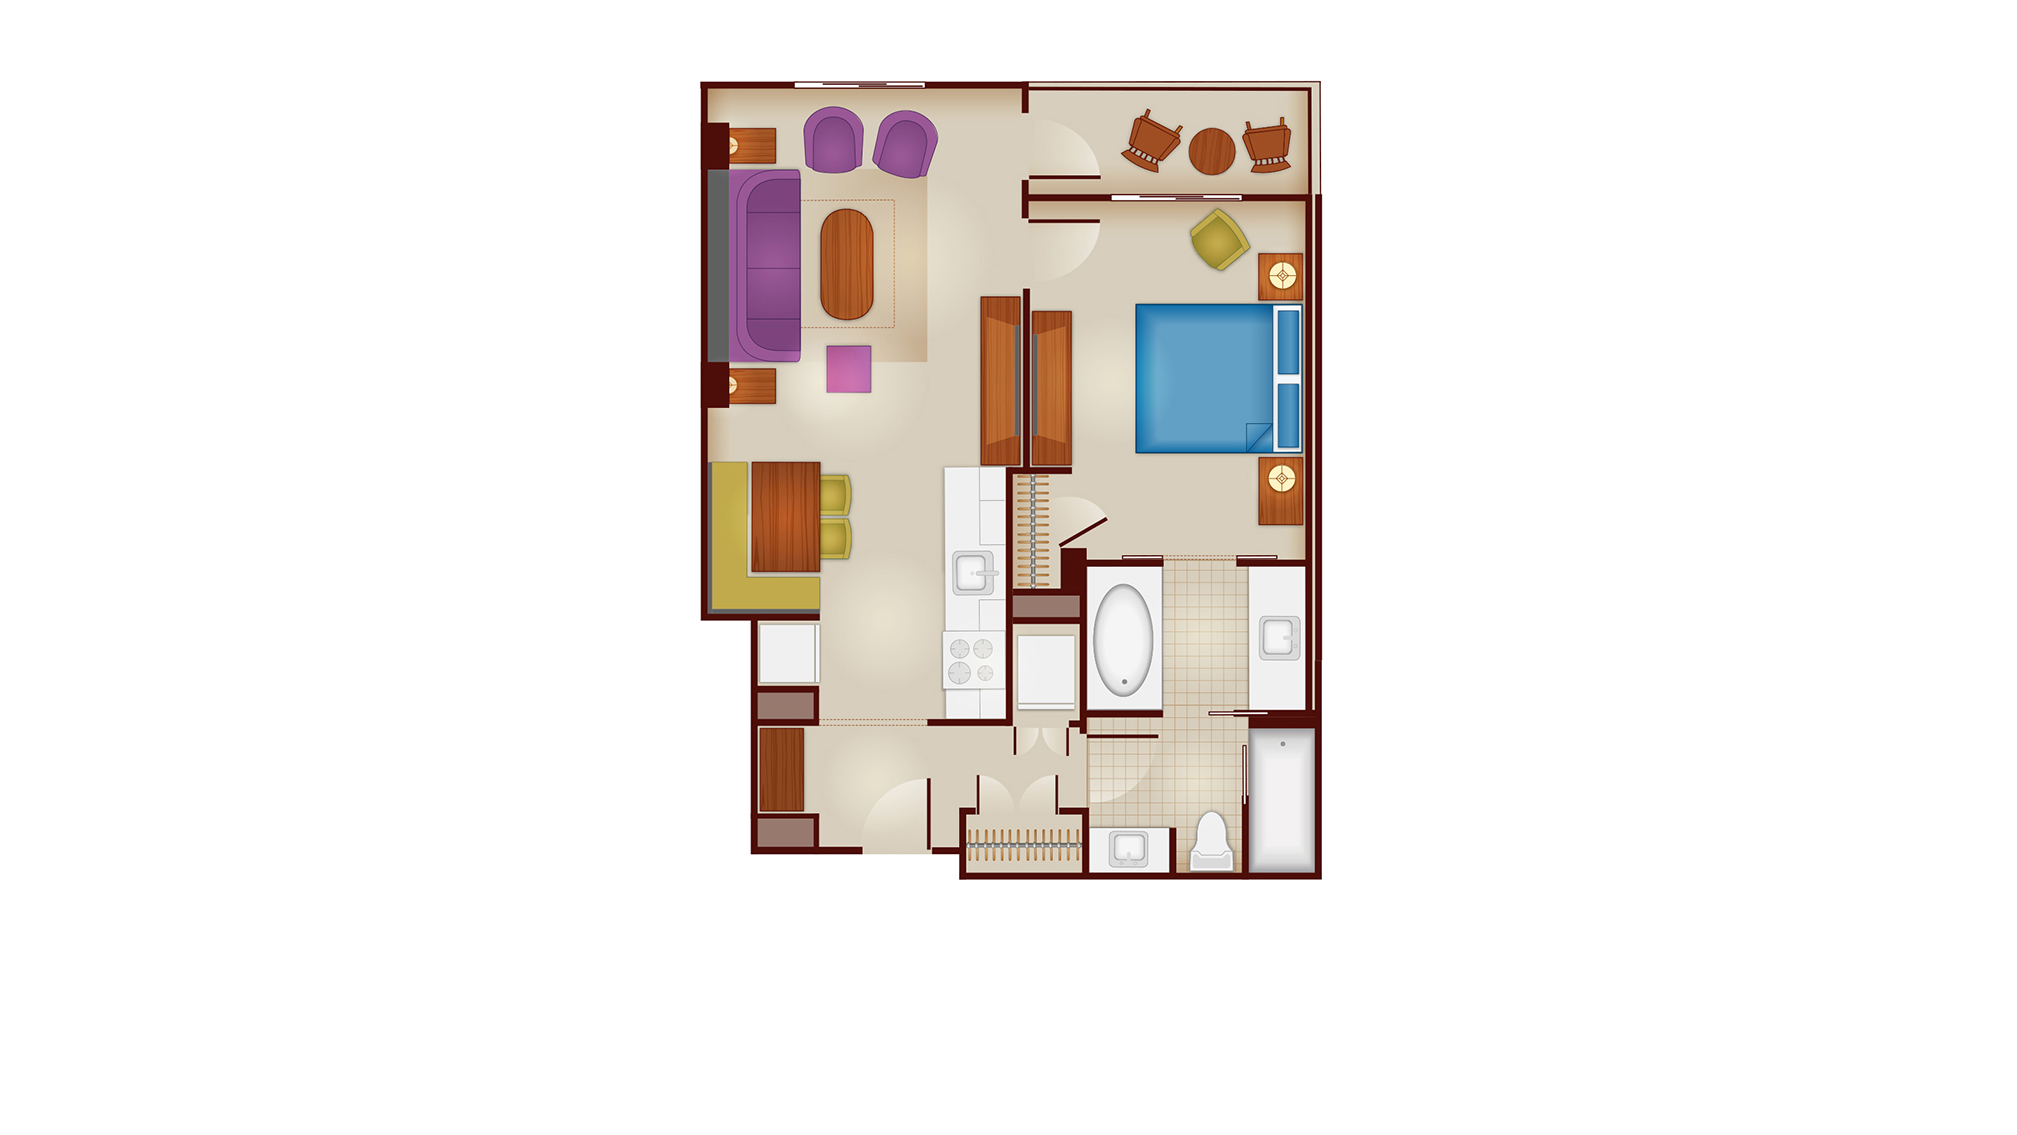 riviera 1-bedroom layout